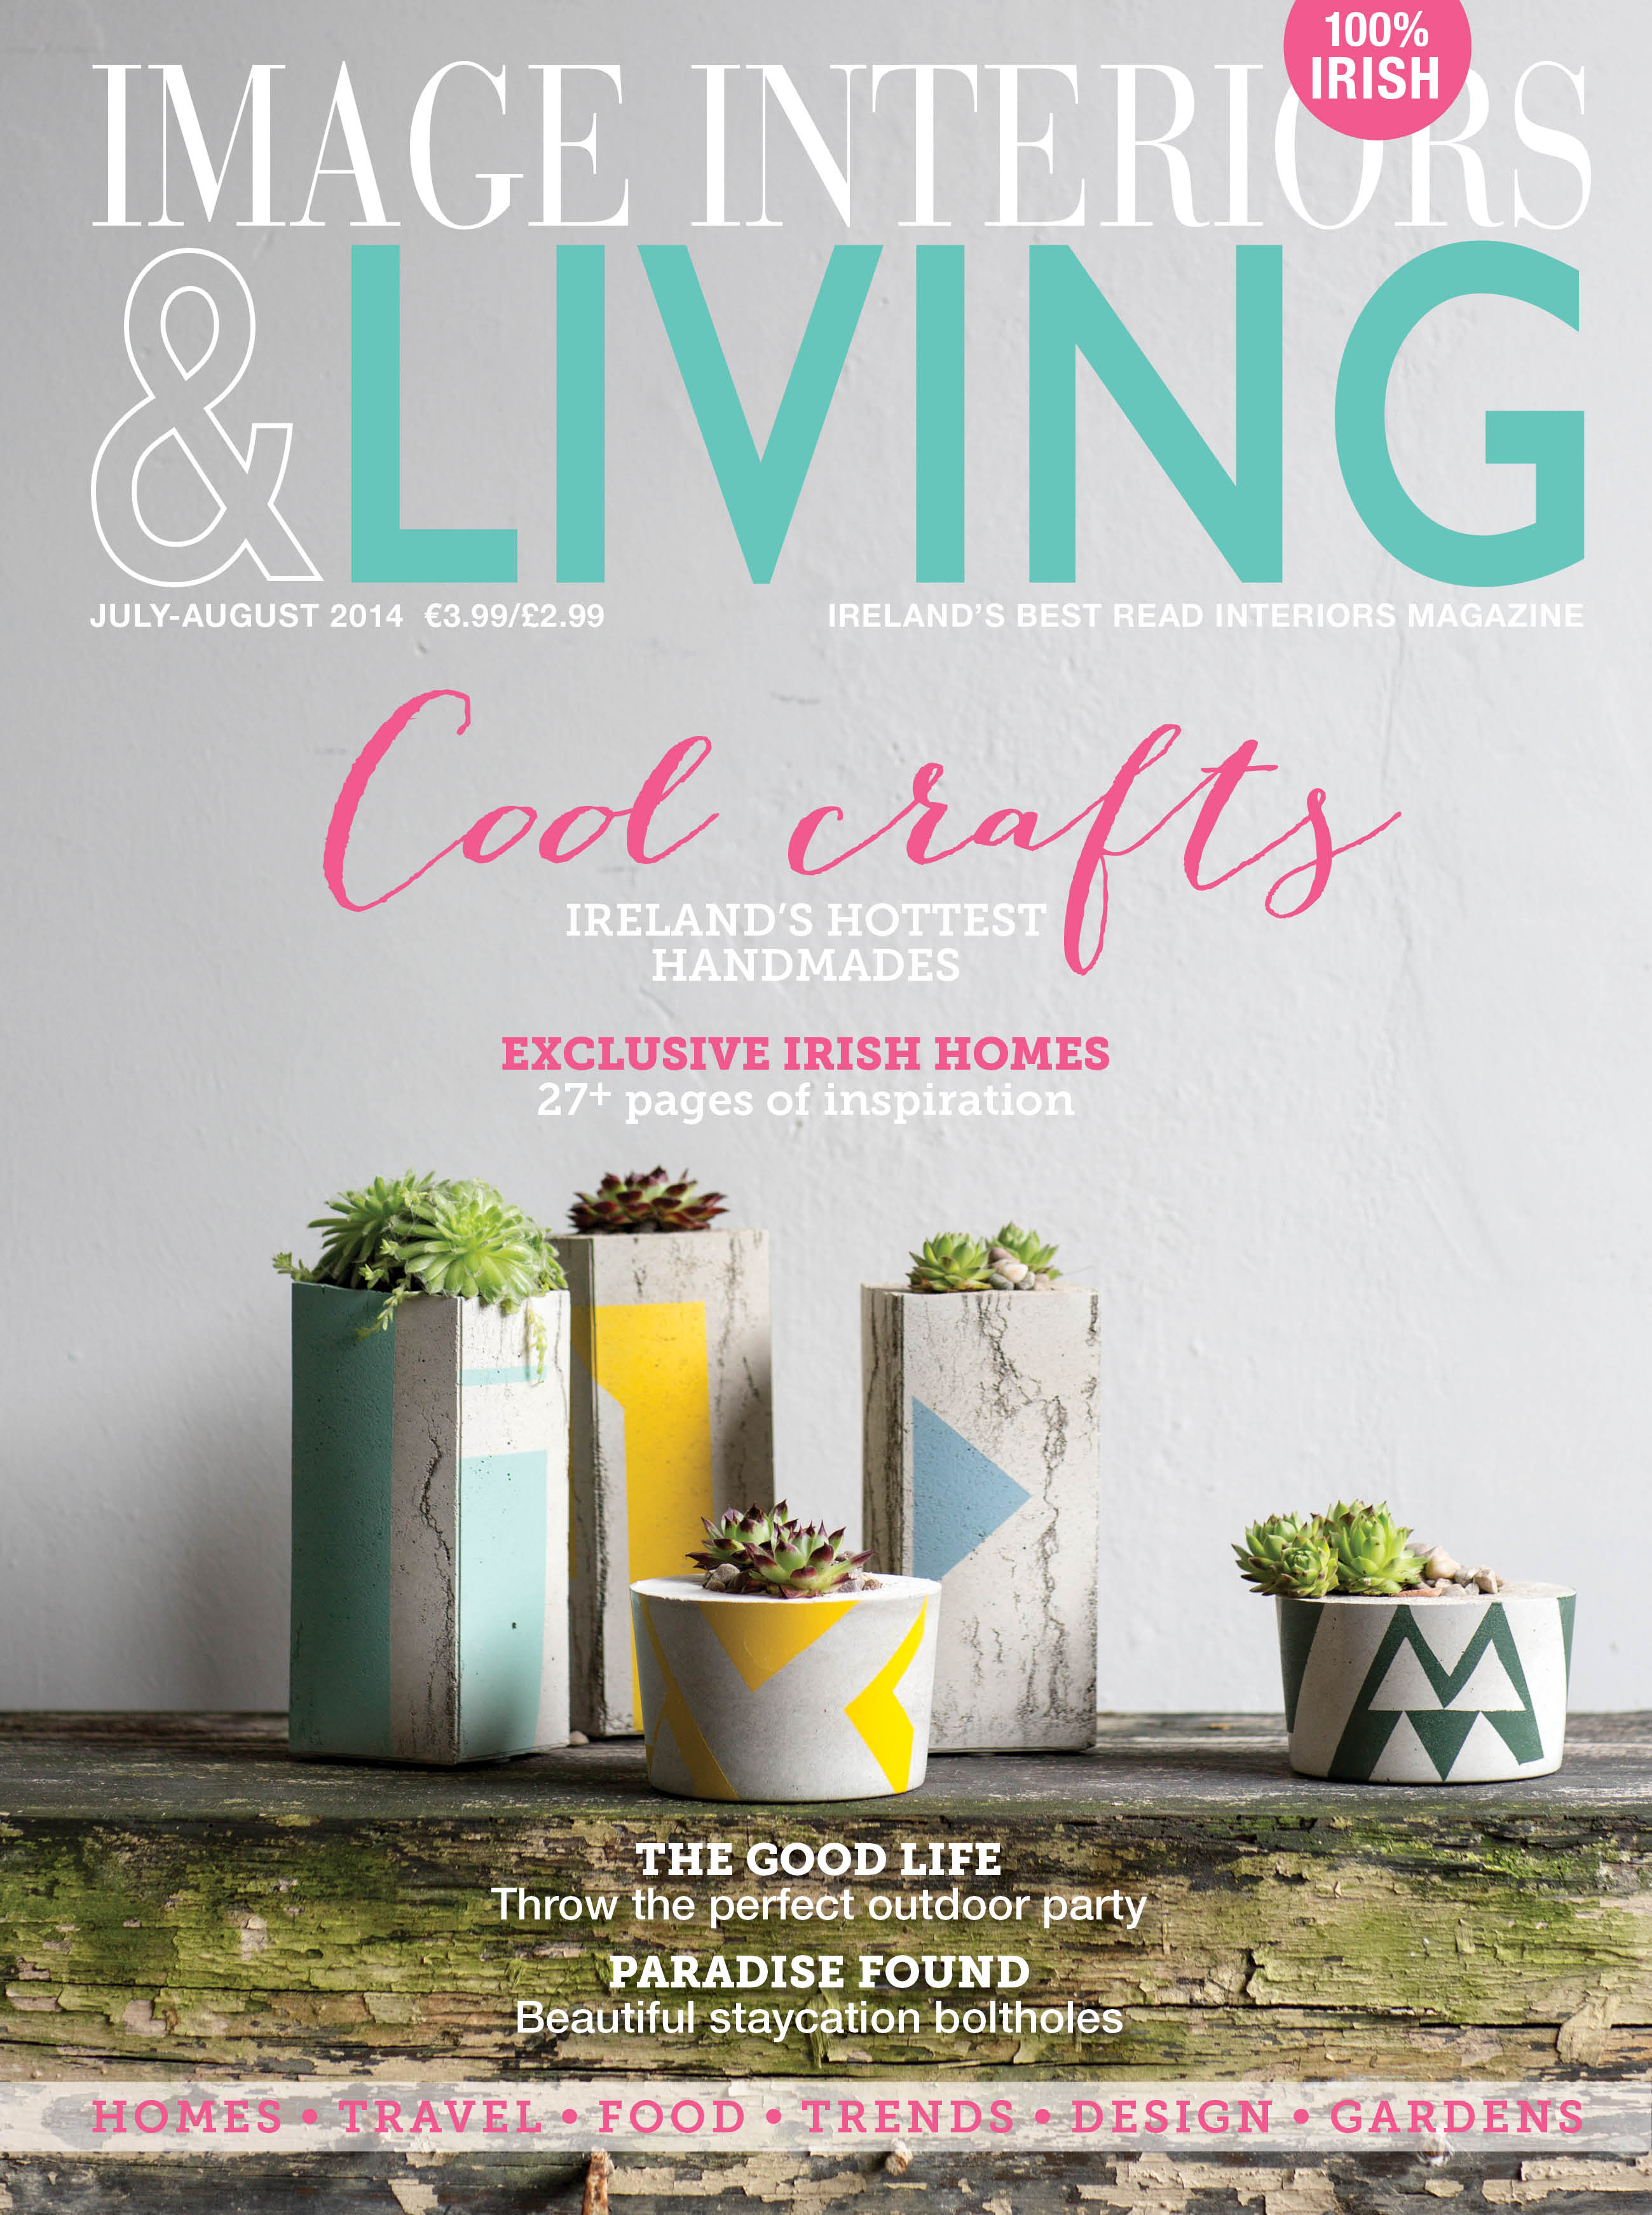 Image Interiors & Living | July/August 2014